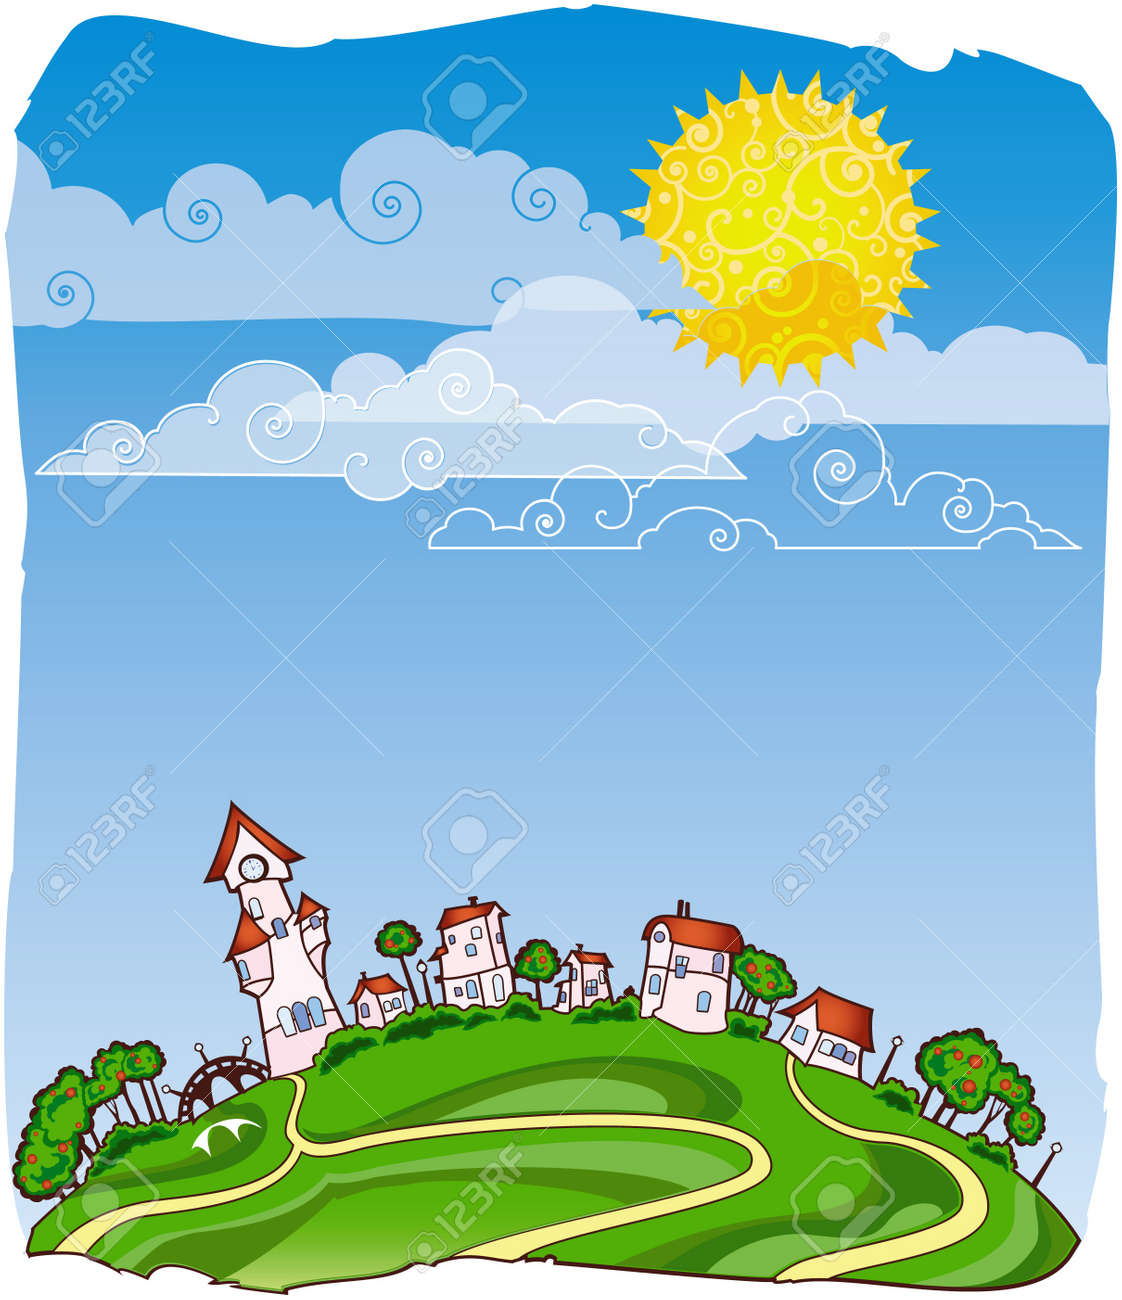 Sunny day poster - 8912614